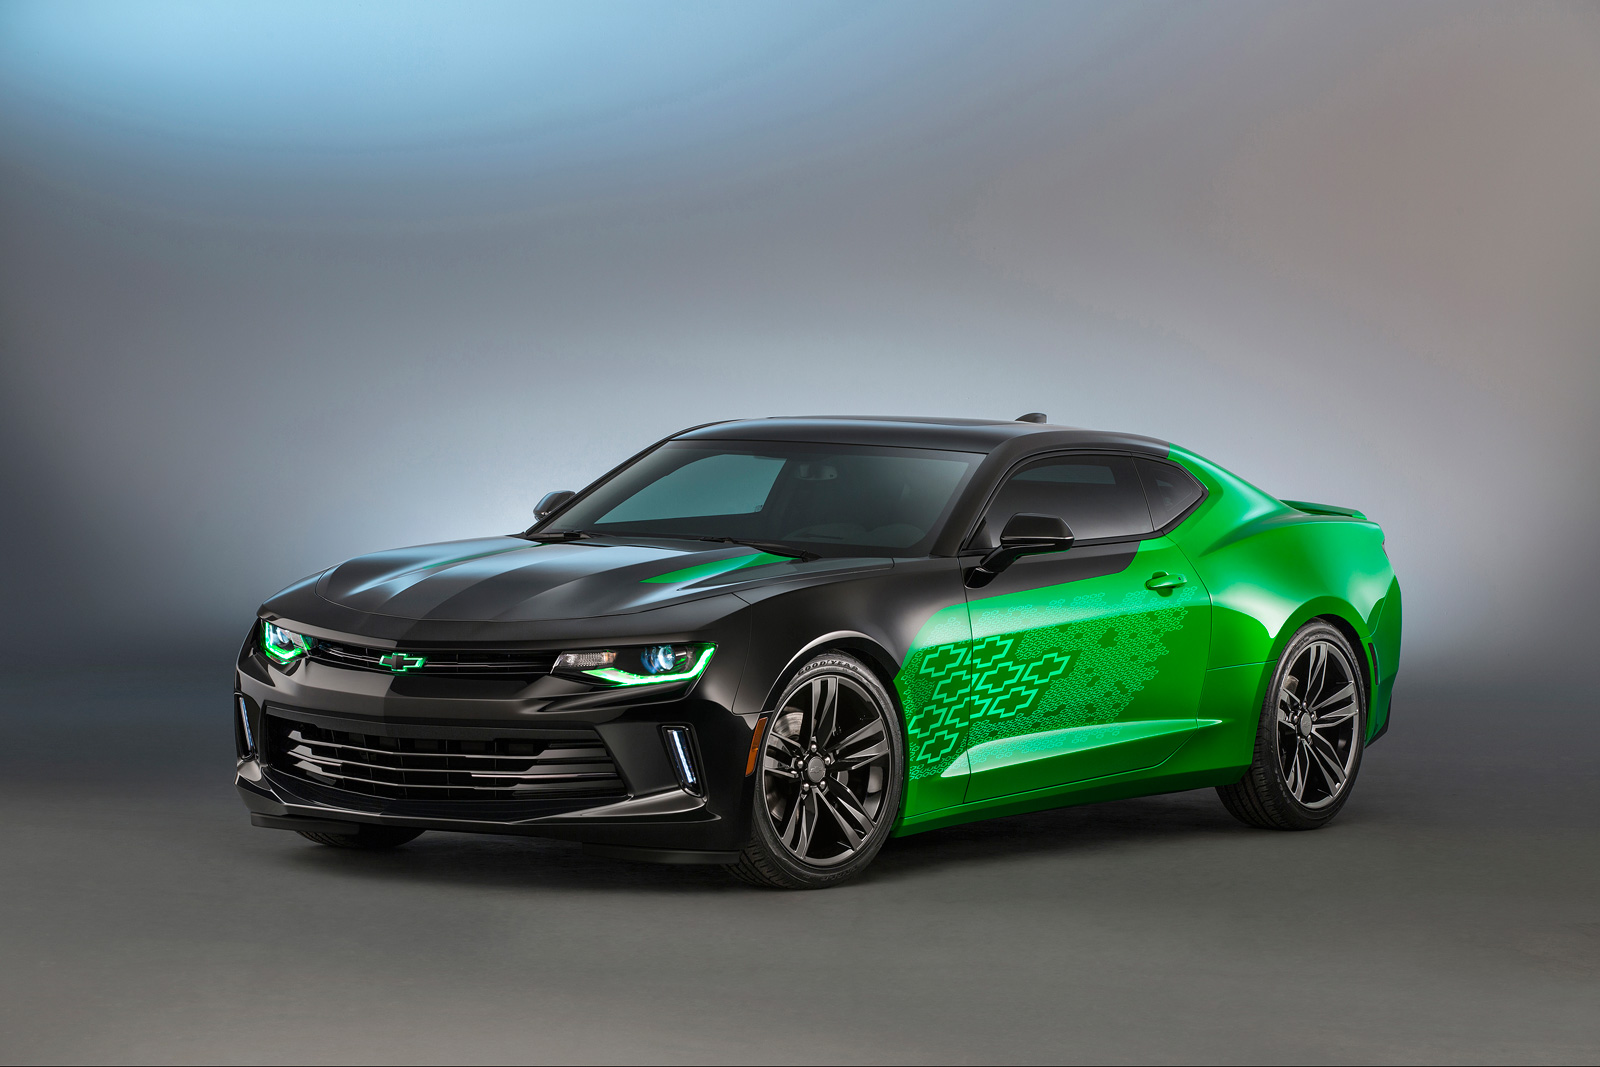 All Chevy chevy concepts : Chevrolet Goes All Out with Gen Six Camaro Concepts for SEMA